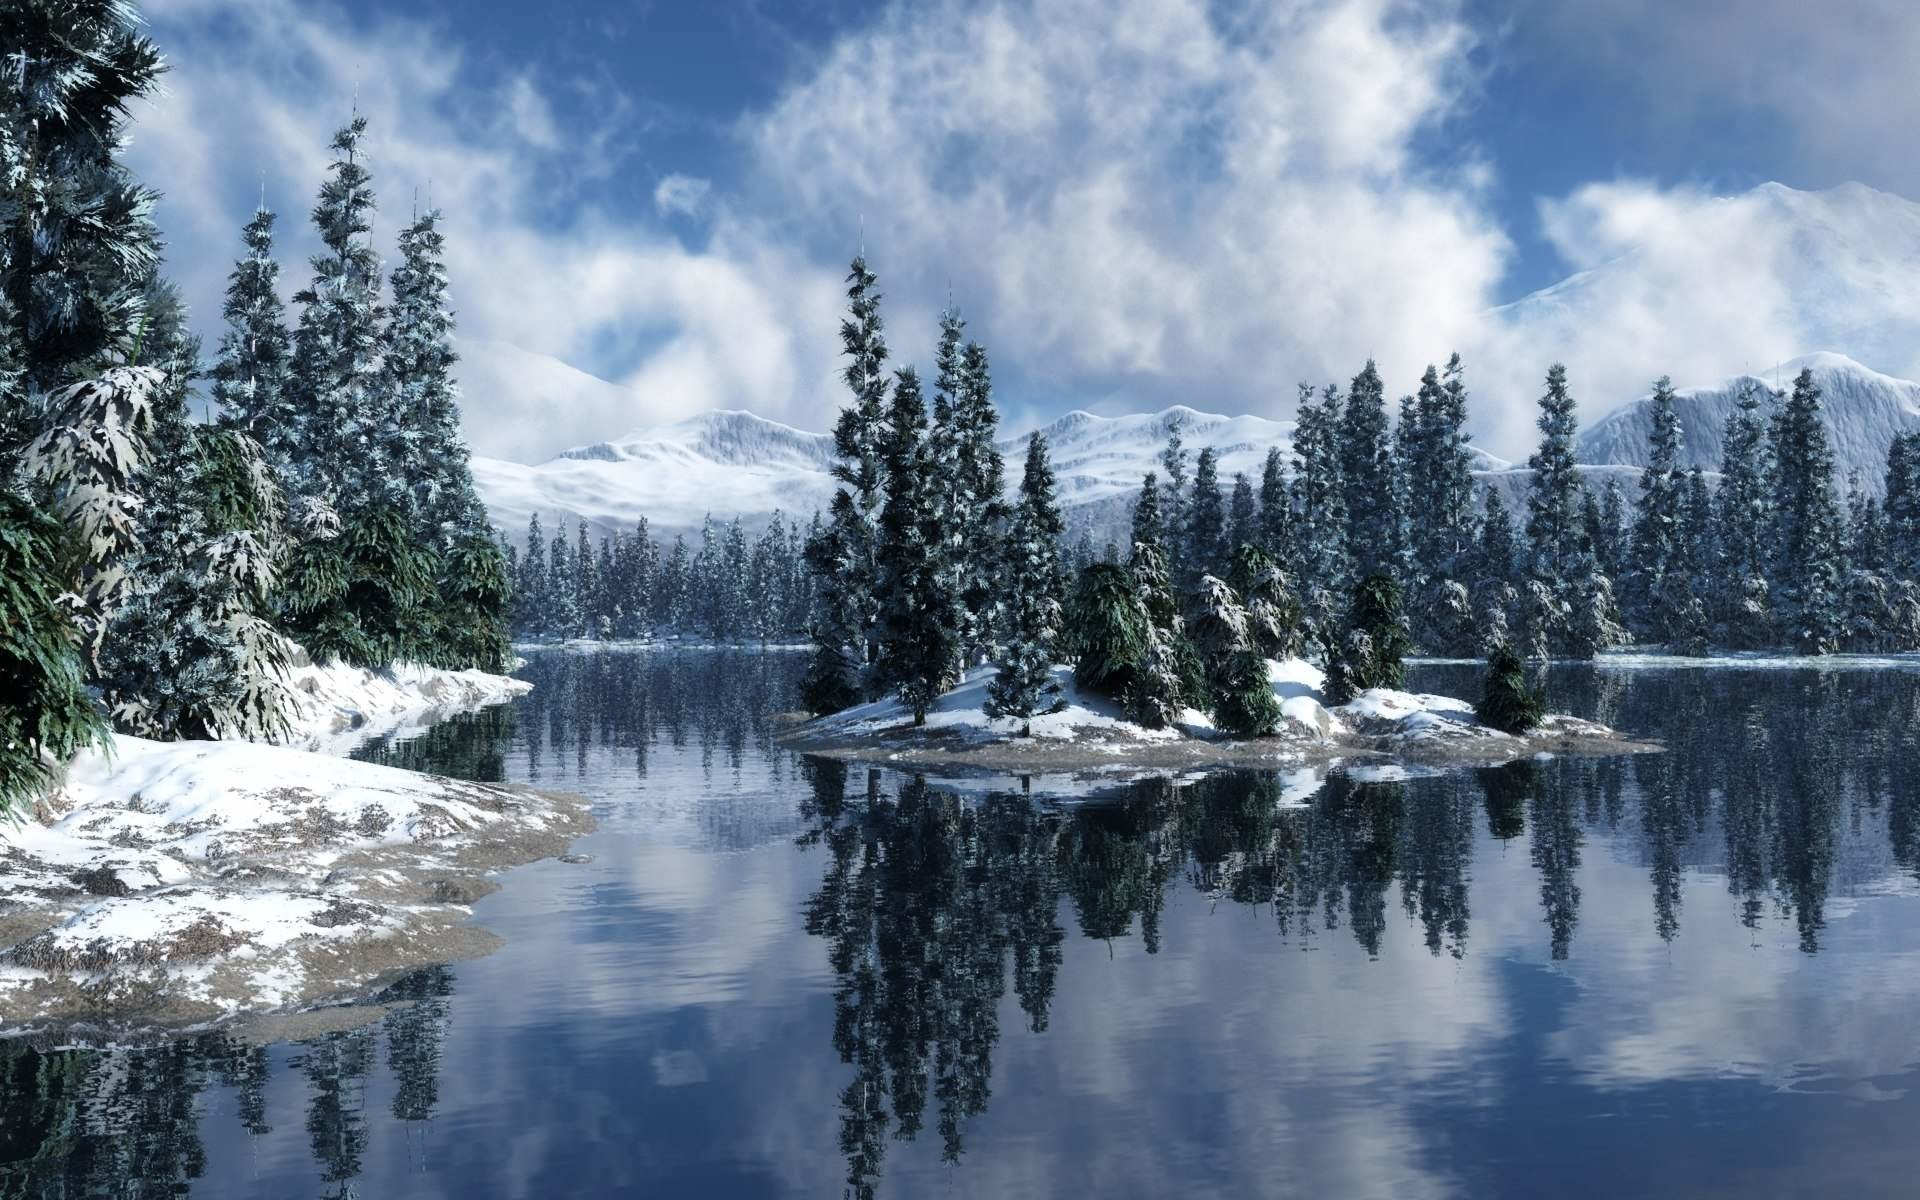 Snowy Screensavers Forest Christmas wallpapers HD free – 201957